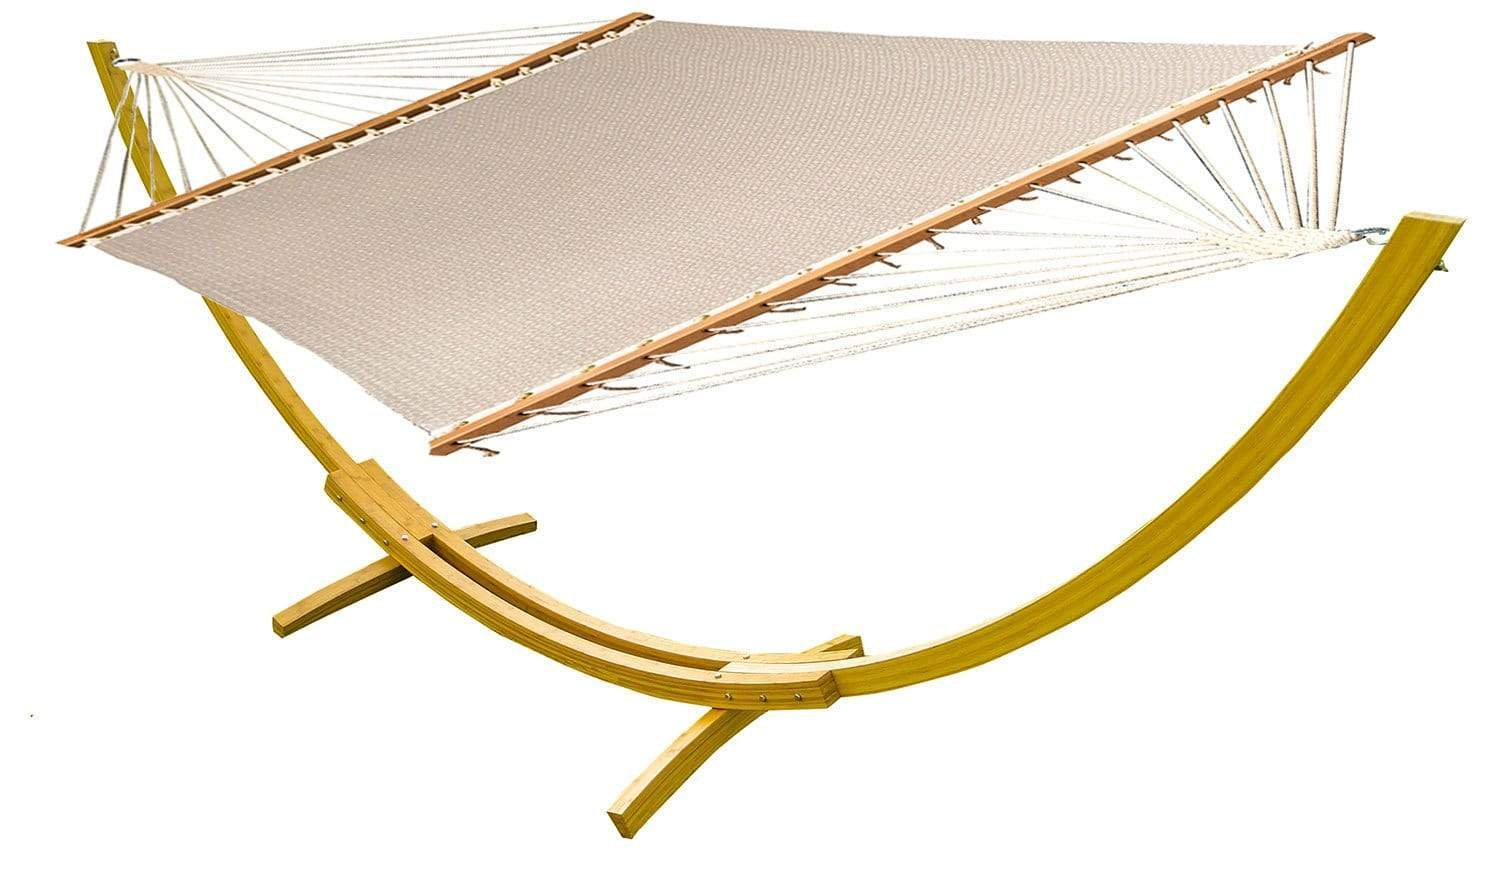 Hammock Universe Hammocks with Stands sand-patterns Poolside | Lake Hammock with Bamboo Stand